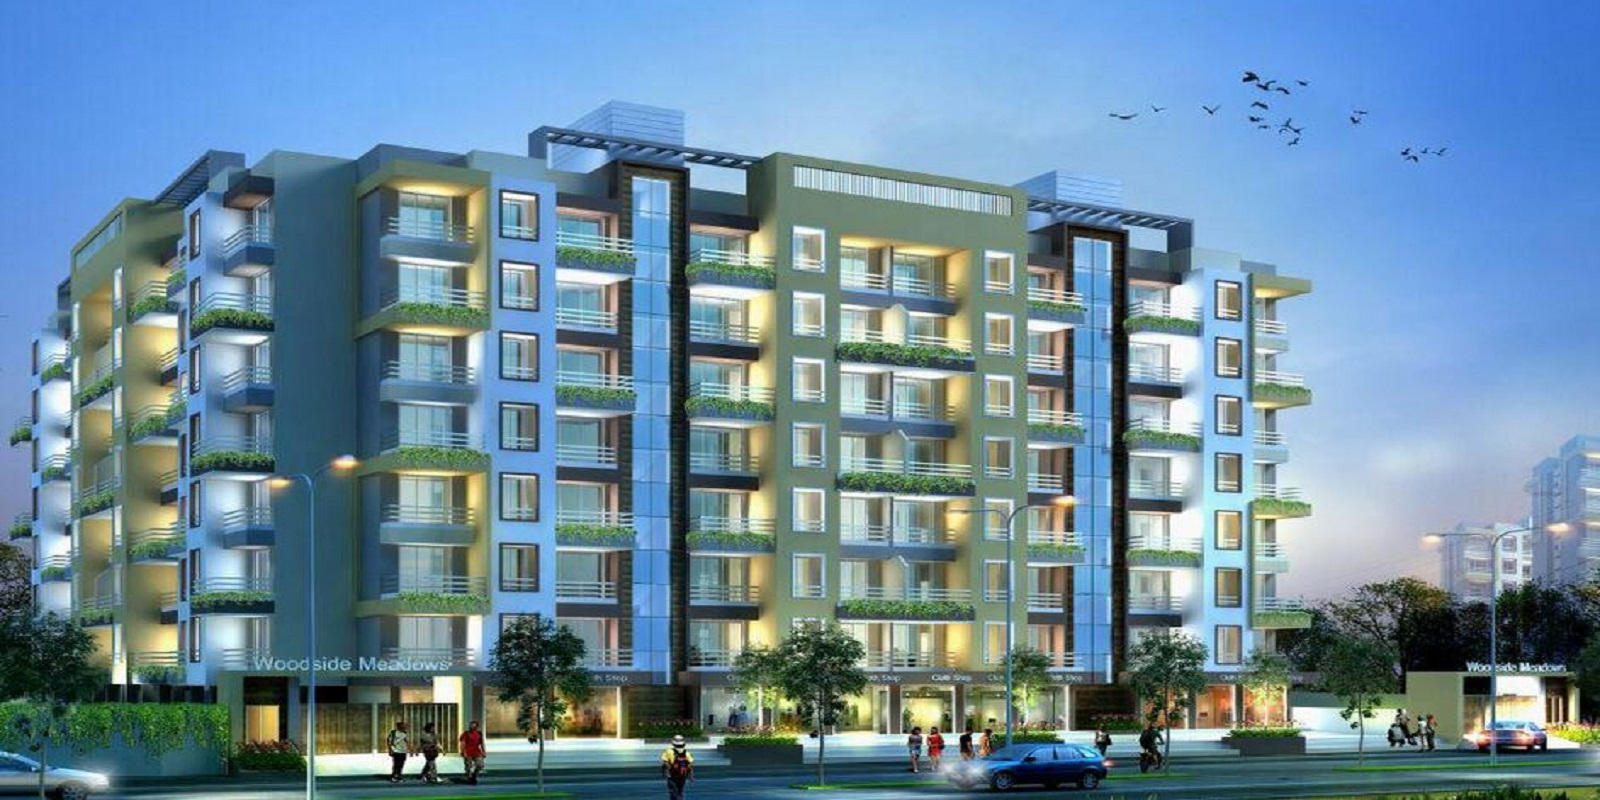 om shree sai woodside meadows project project large image1